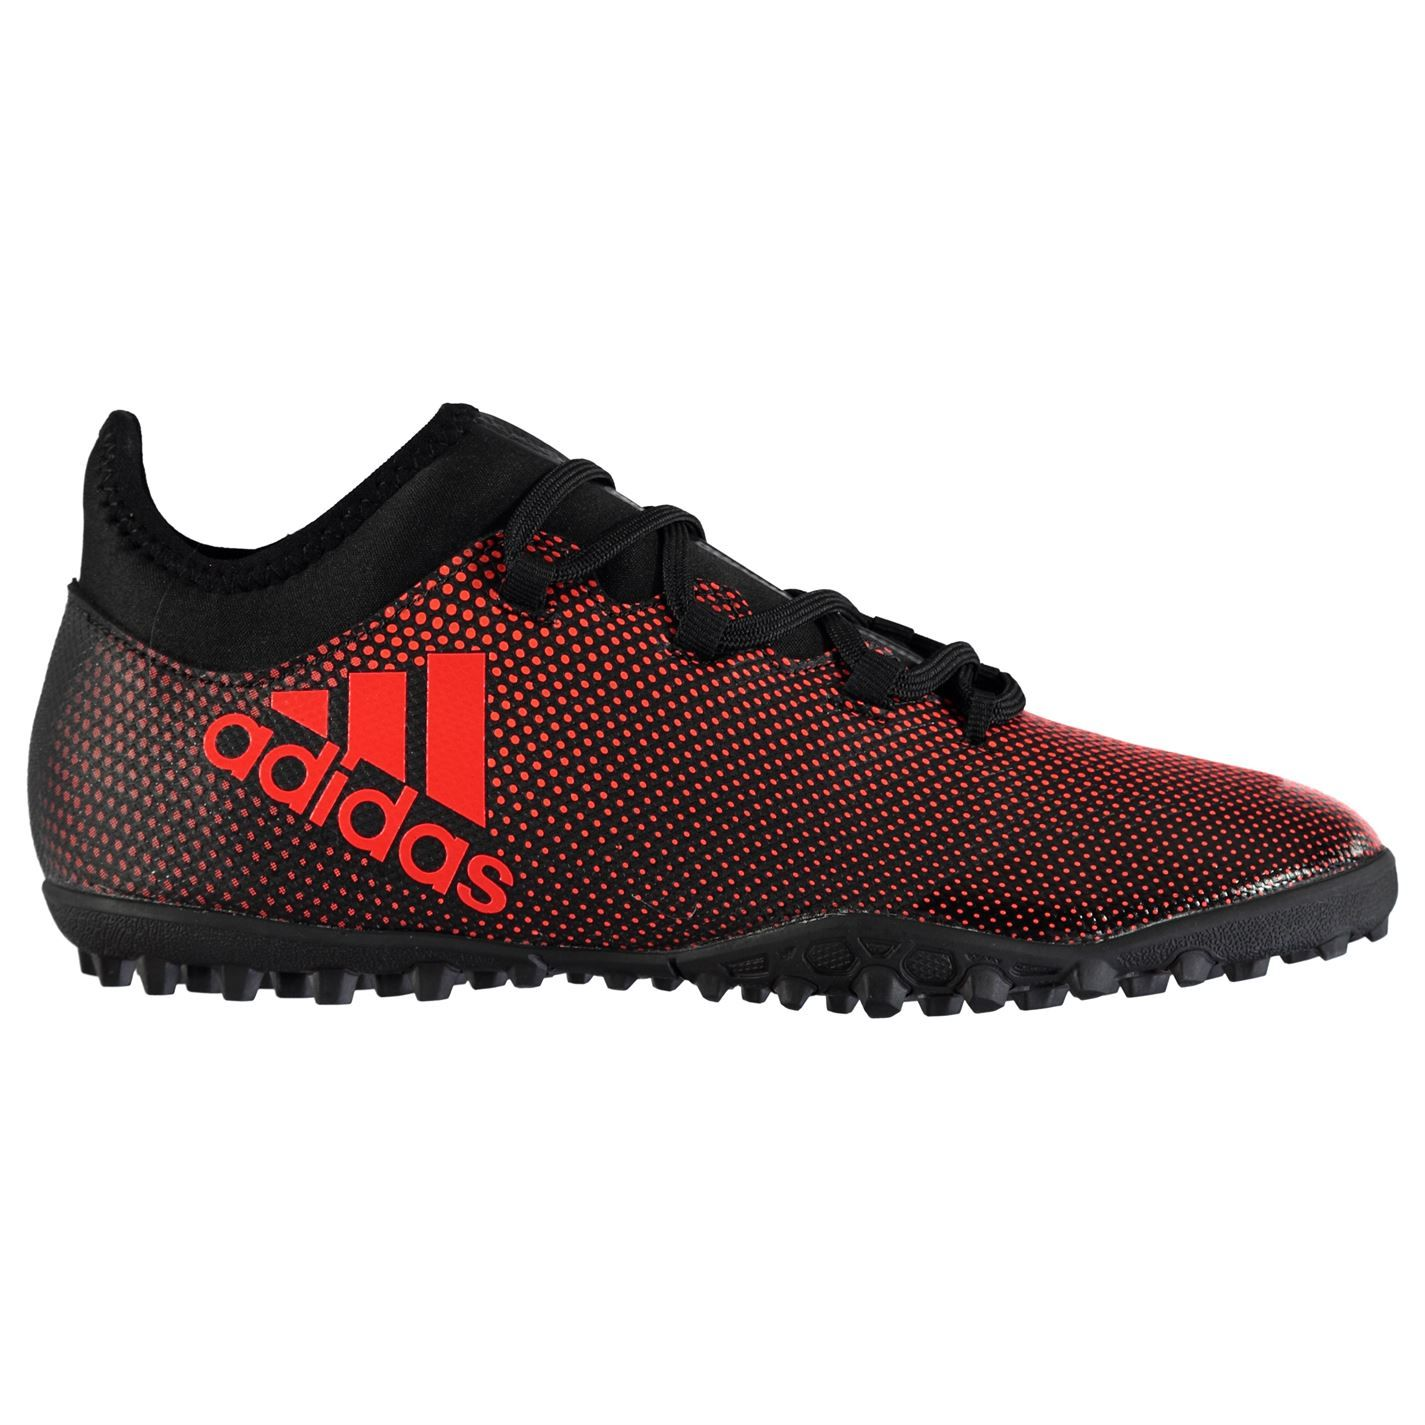 ADIDAS X 17.3 ASTRO TURF TRAINERS MENS £59.99 – £69.99